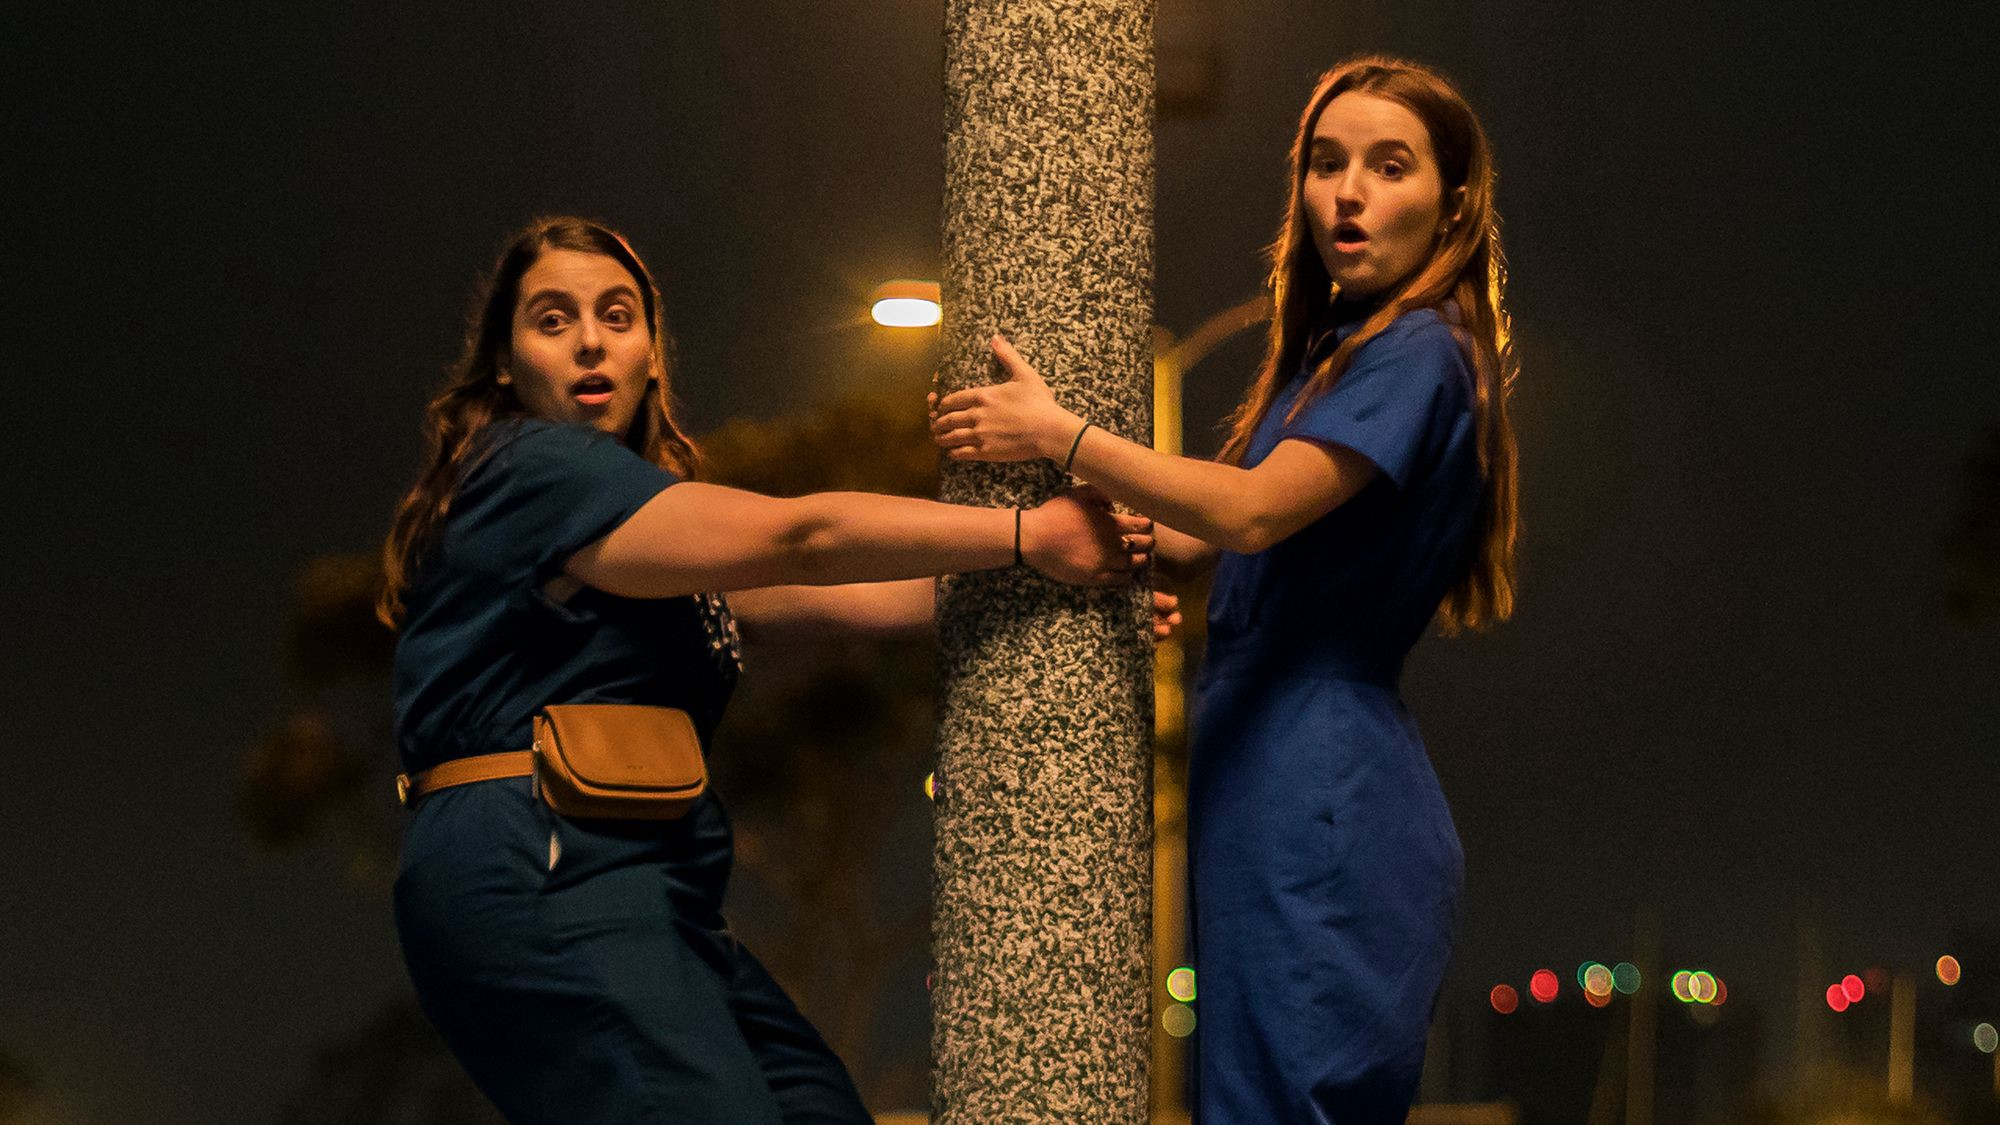 booksmart raunchy generation sxsw comedy greatest female characters